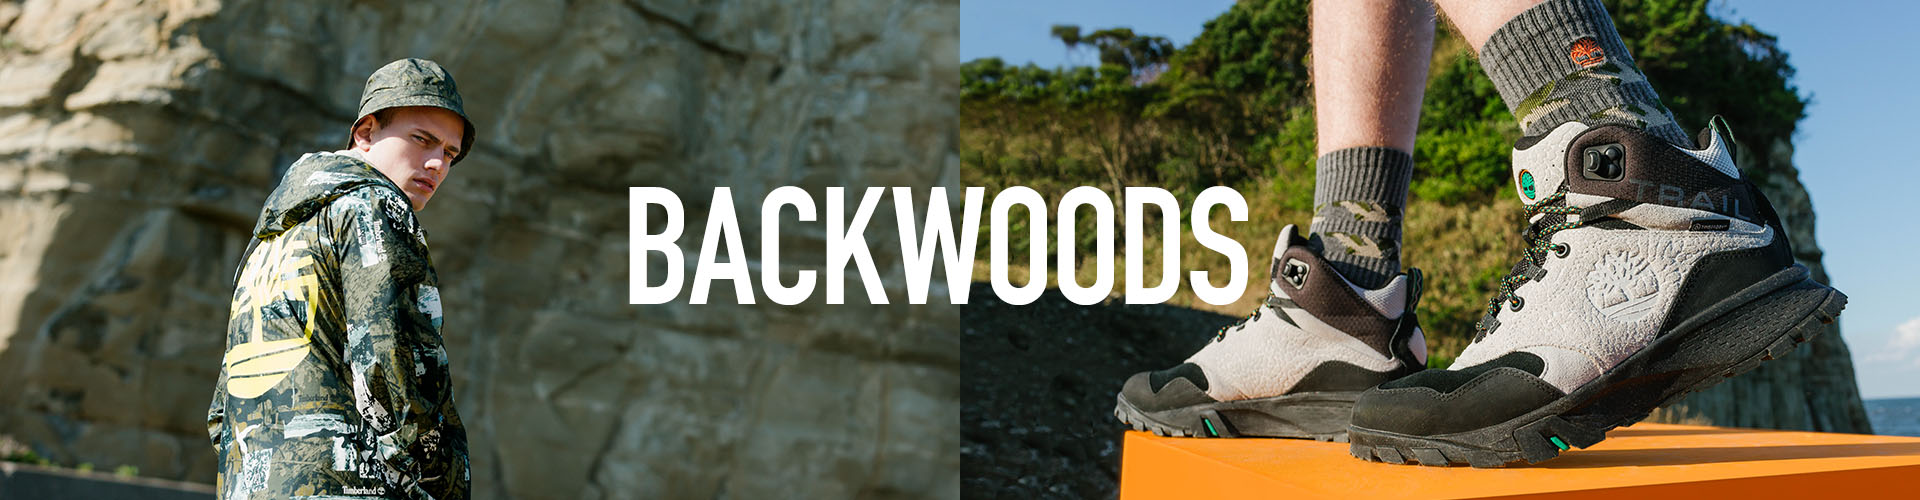 Backwoods Category